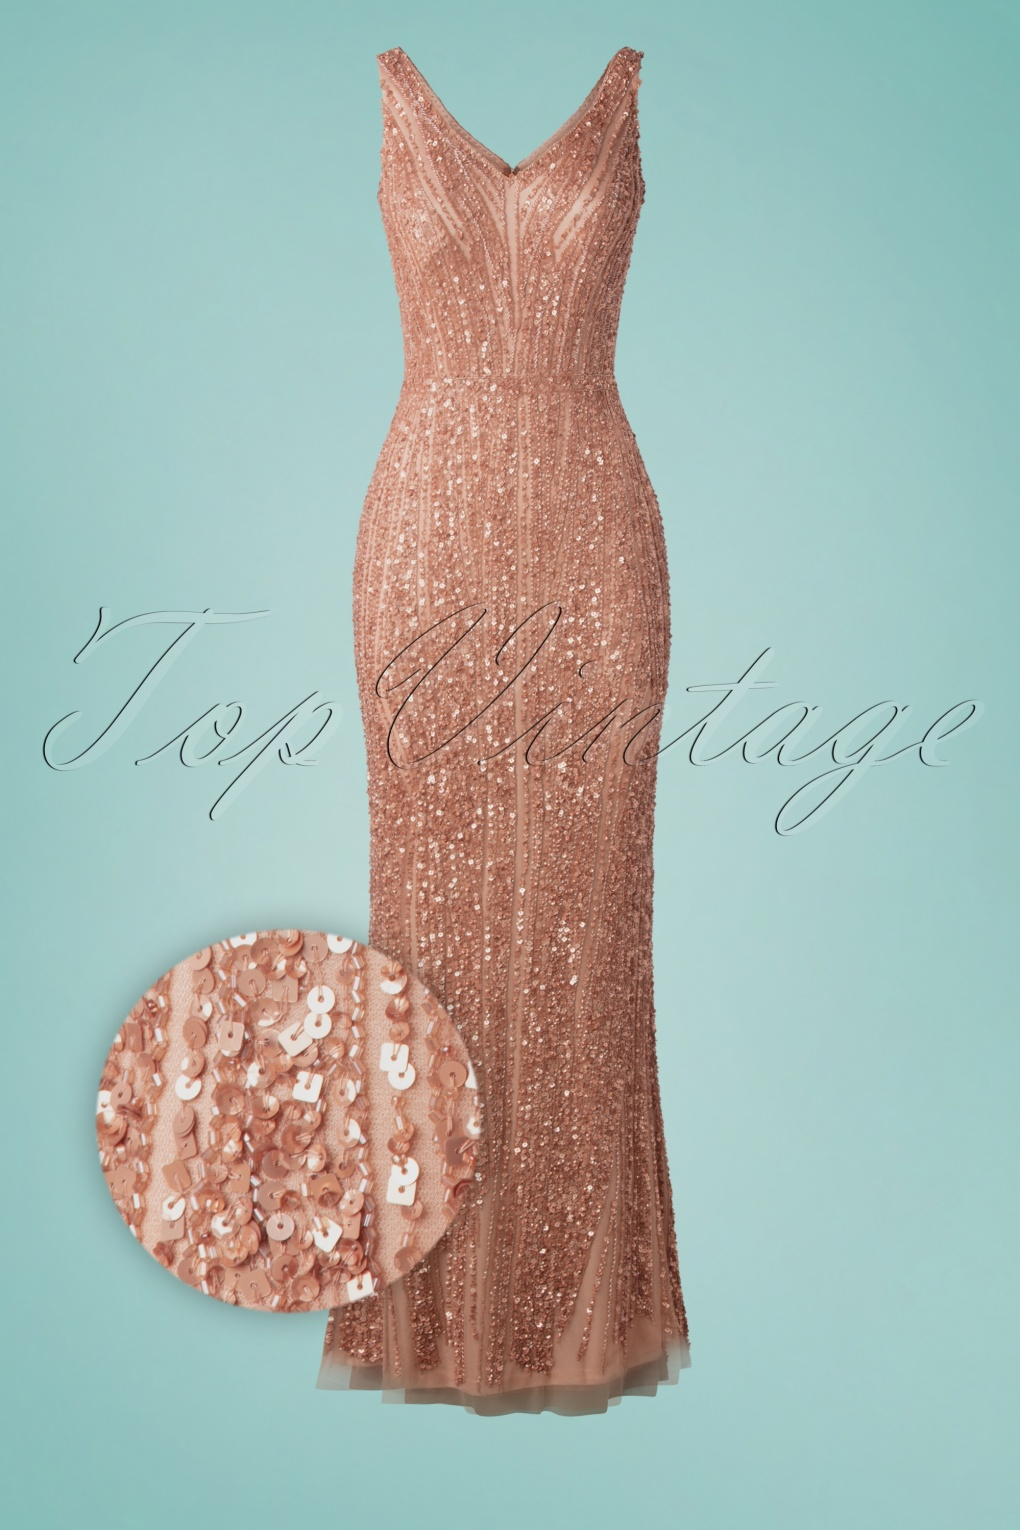 1920s Formal Dresses & Evening Gowns Guide 20s Sophie Sequin Maxi Dress in Rose Gold £204.40 AT vintagedancer.com